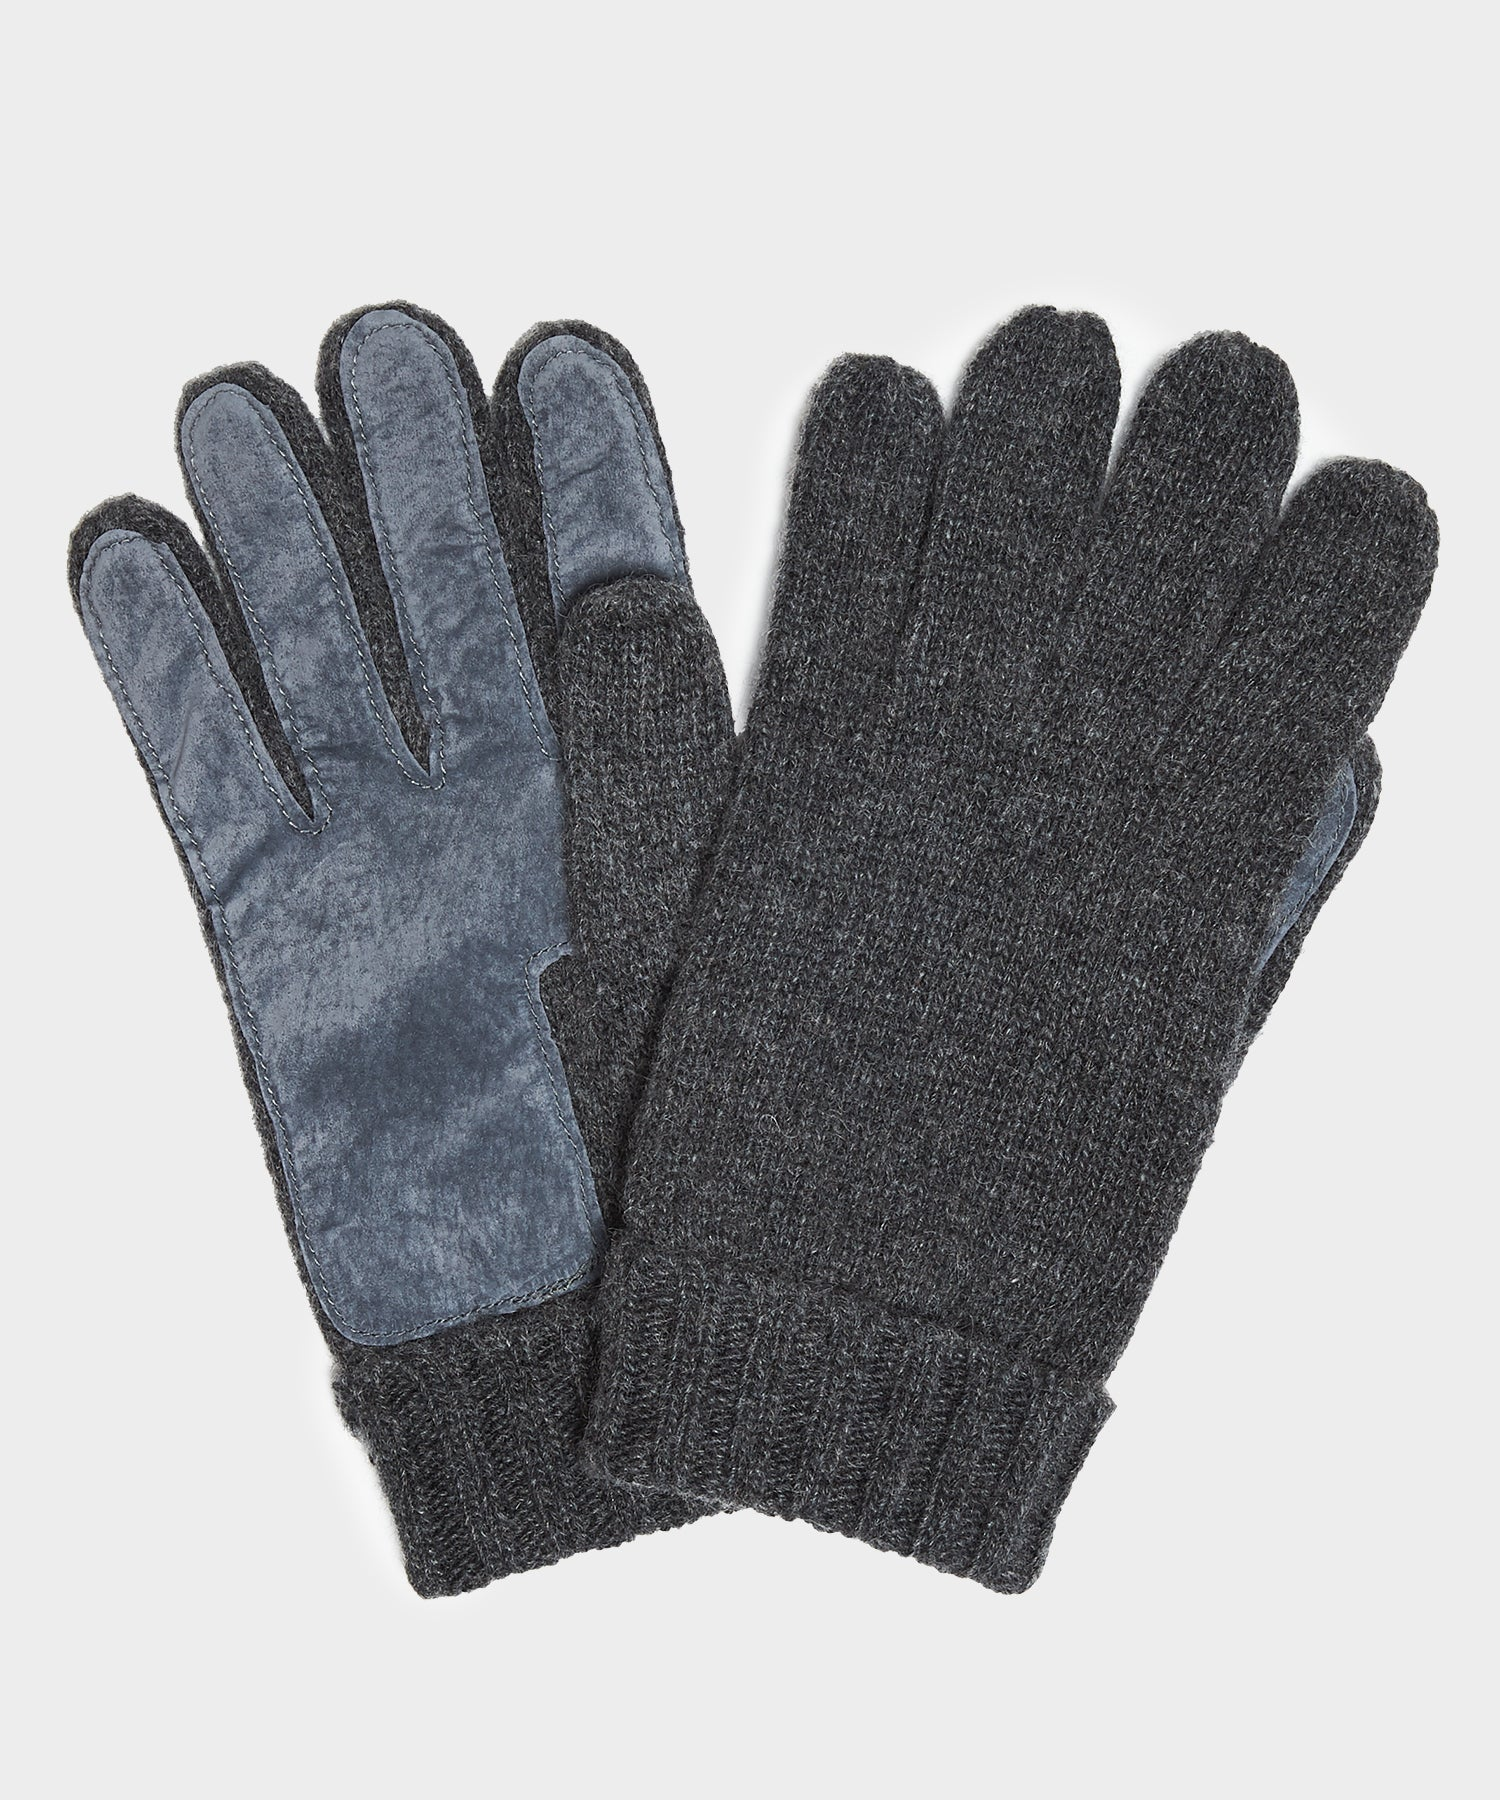 Dents Cardiff Cashmere Knitted Gloves with Suede Palm Patch in Charcoal